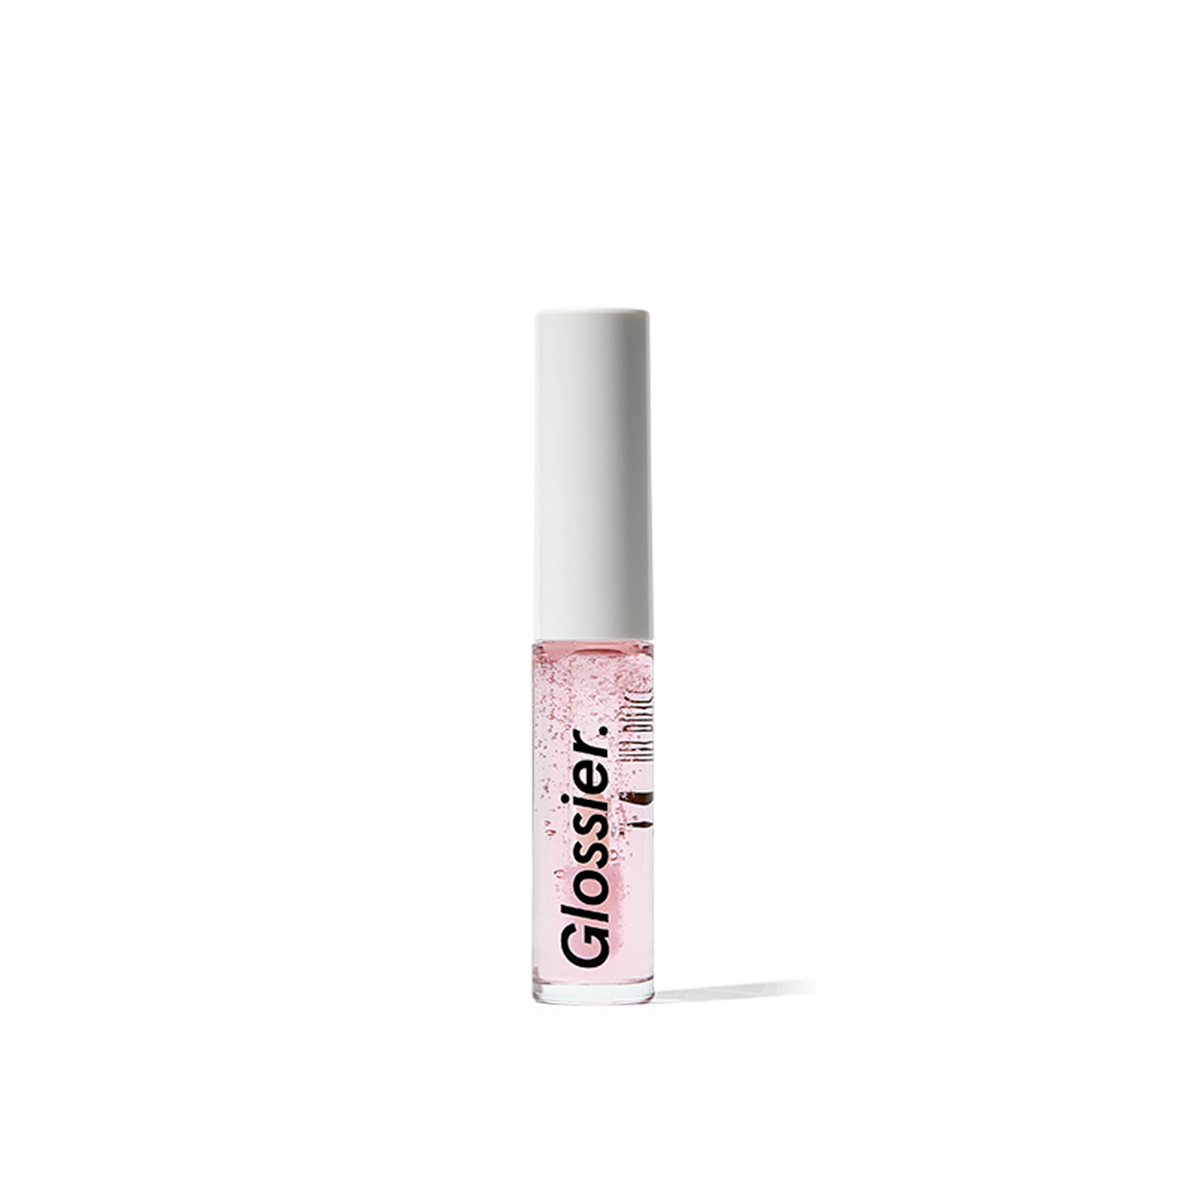 Glossier Lip Gloss, Cushiony crystal clear shine, .14 fl oz, lips stay soft and hydrated thanks to moisturizing Vitamin E